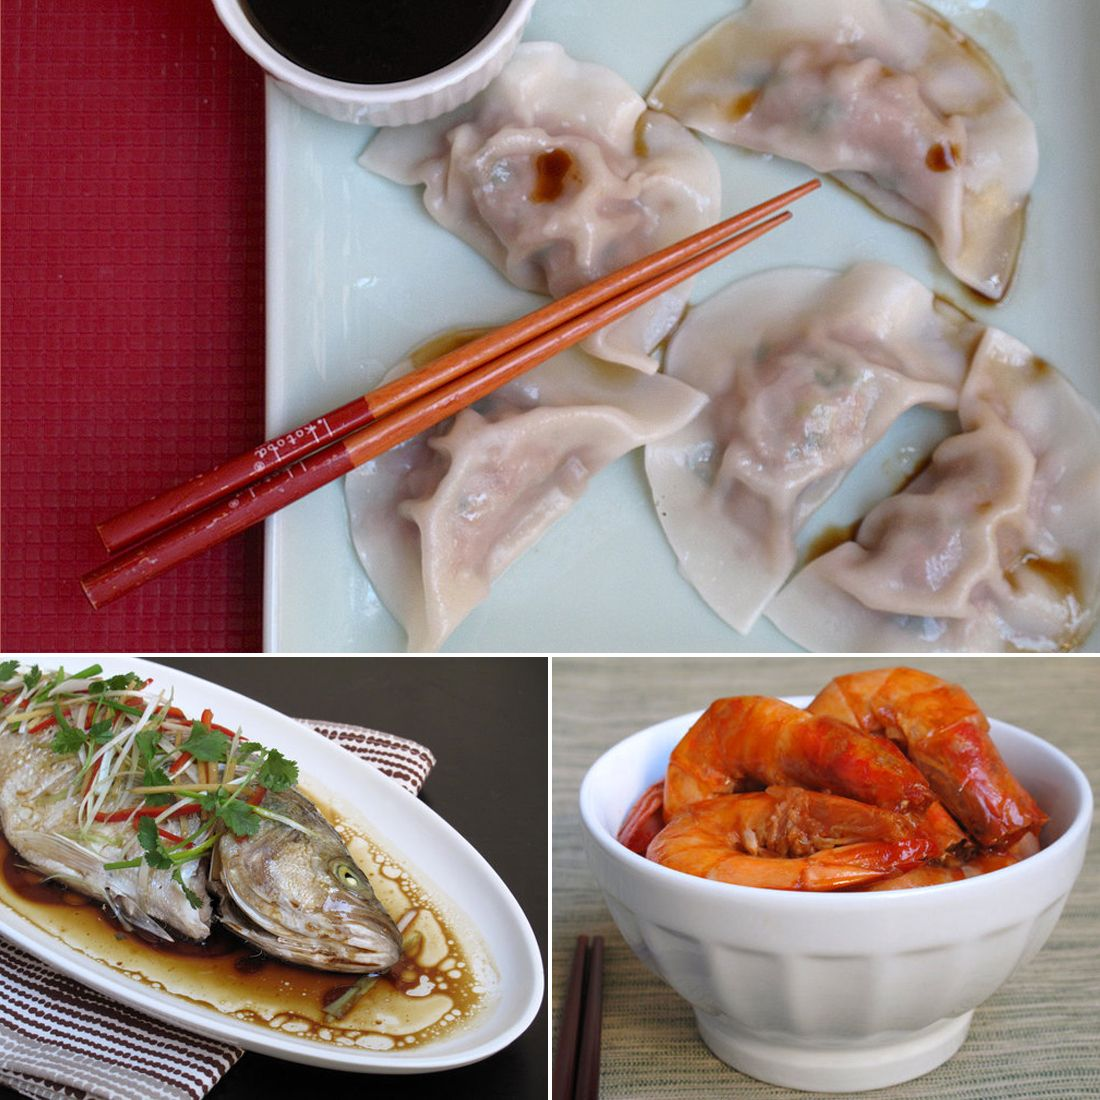 Classic chinese recipes for the lunar new year recipes pinterest classic chinese recipes for the lunar new year forumfinder Image collections